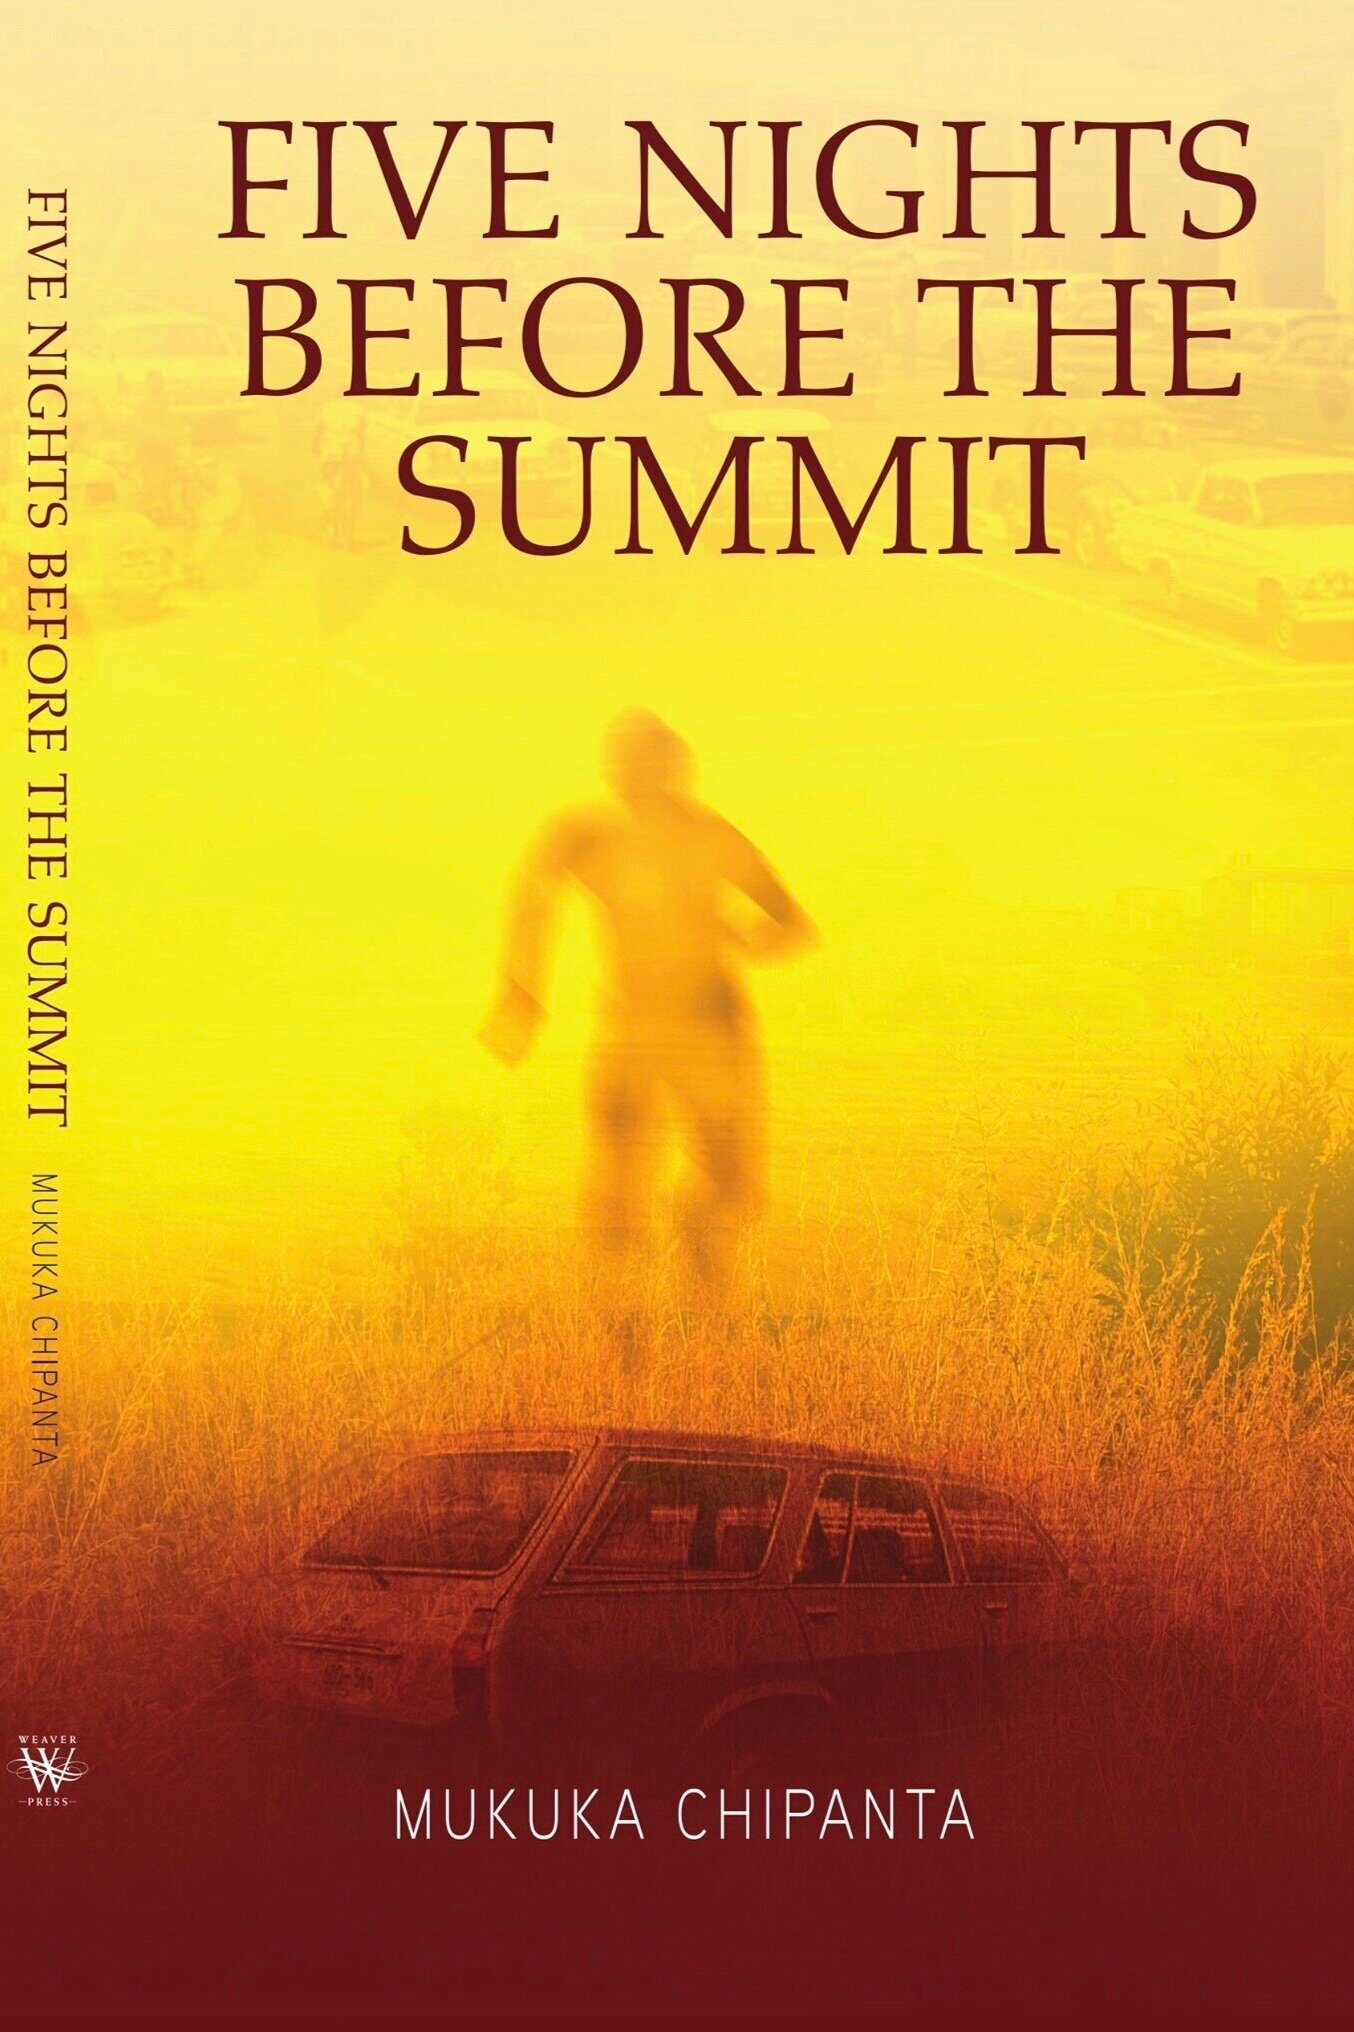 Five Nights Before The Summit - It is 1979. The First Commonwealth Heads of Government Summit on African soil is due to take place in Zambia, graced by Queen Elizabeth herself. Barely a week before this much anticipated event, a white British couple, Henry and Laura Hinckley, are brutally killed on their farm on the outskirts of the capital city, Lusaka. The unknown perpetrators are at large, their motive unclear. Fearing a media backlash, the British government applies pressure on the Zambian authorities to bring the culprits to book, threatening to cancel the Queen's trip altogether – a move that would result in huge embarrassment for the Zambian government.Detective Maxwell Chanda, head of the Special Crimes Investigative Unit, is the man tasked with leading the investigation. He is a wise, steady hand, but will he be able to piece together the seemingly disparate evidence in just five days? Will he be able to hold firm under the intense political pressure which insists on putting expediency above accuracy?Five Nights Before The Summit is Chipanta's second novel published by Weaver Press, Zimbabwe.